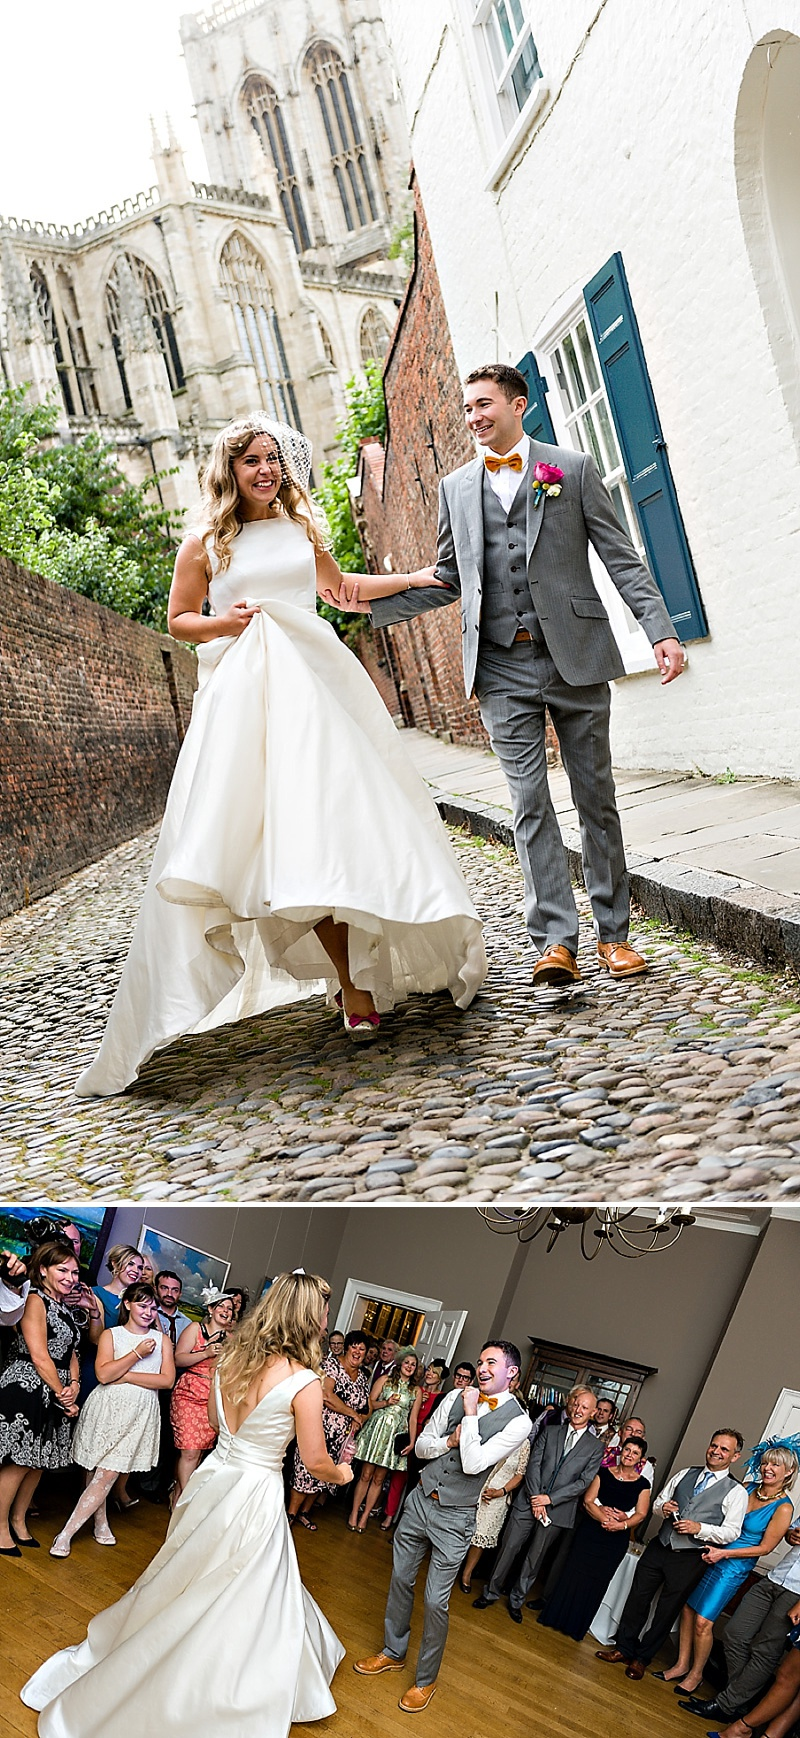 A Vintage Circus Themed Wedding With Brightly Coloured Balloons And Bunting, Gold Glittery Table Numbers, Smarties As Favours And A Carosel Cake Topper Bride In Kiki By Kurt Geiger With Images From Shoot Photography_0017